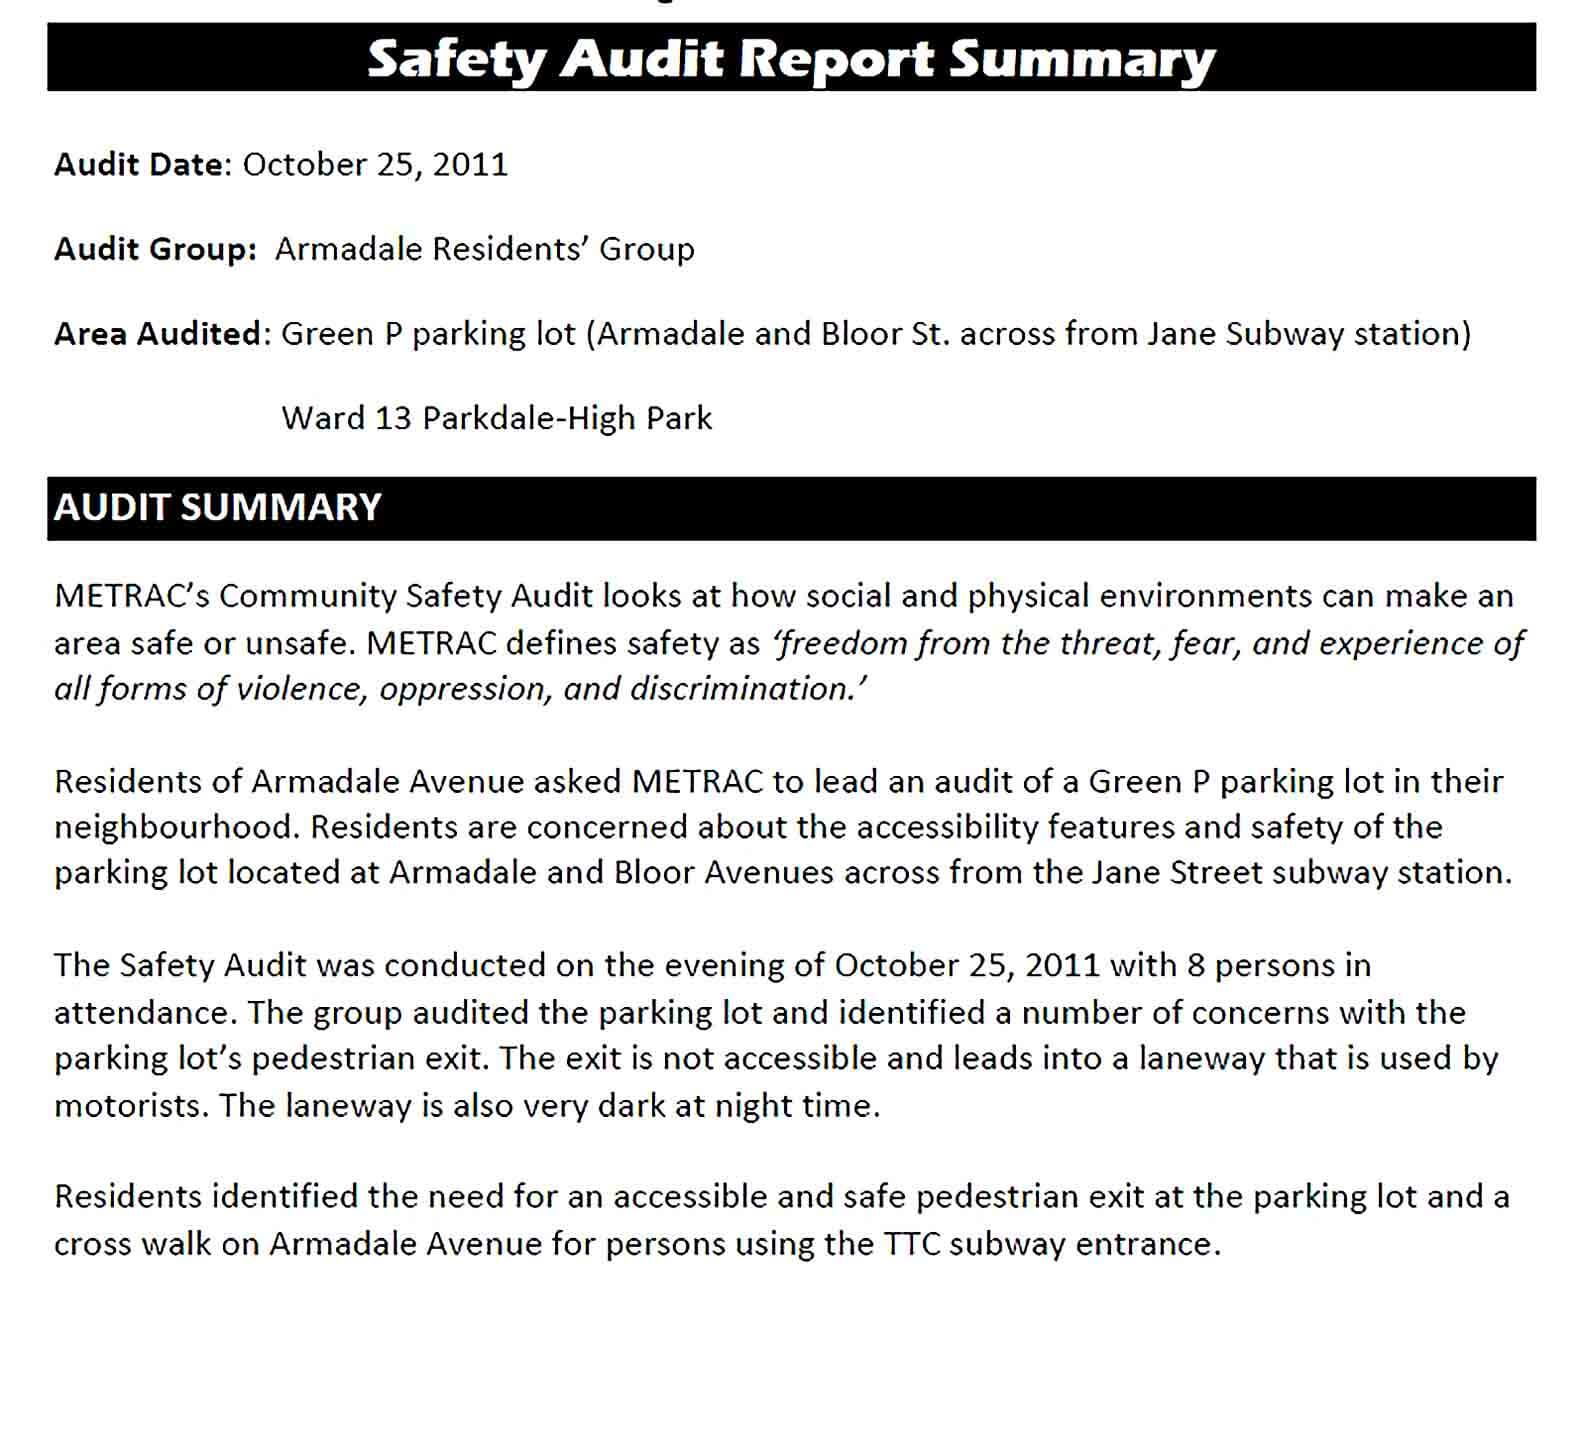 Sample Safety Audit Summary Report Template